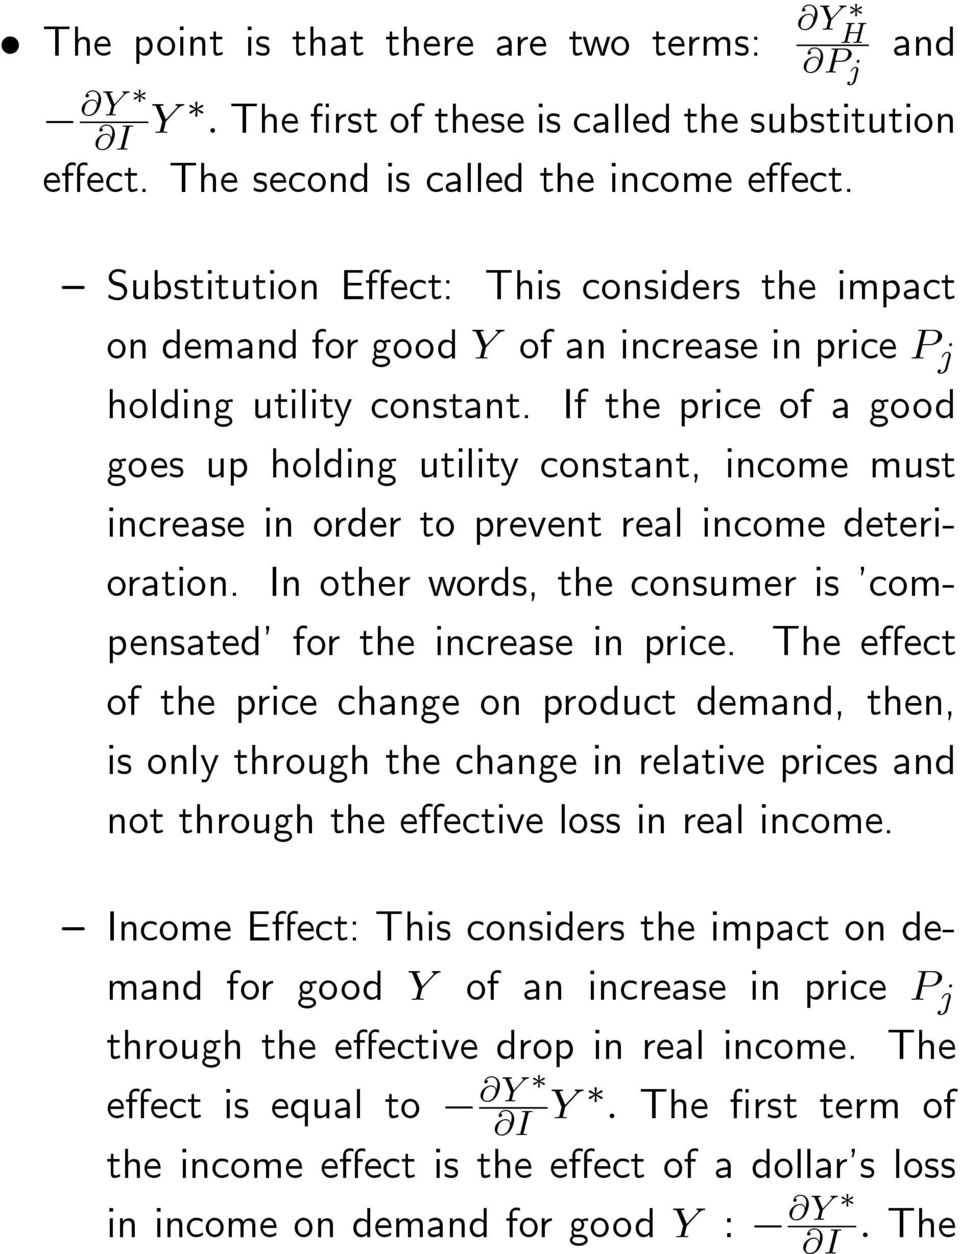 If the price of a good goes up holding utility constant, income must increase in order to prevent real income deterioration. In other words, the consumer is compensated for the increase in price.